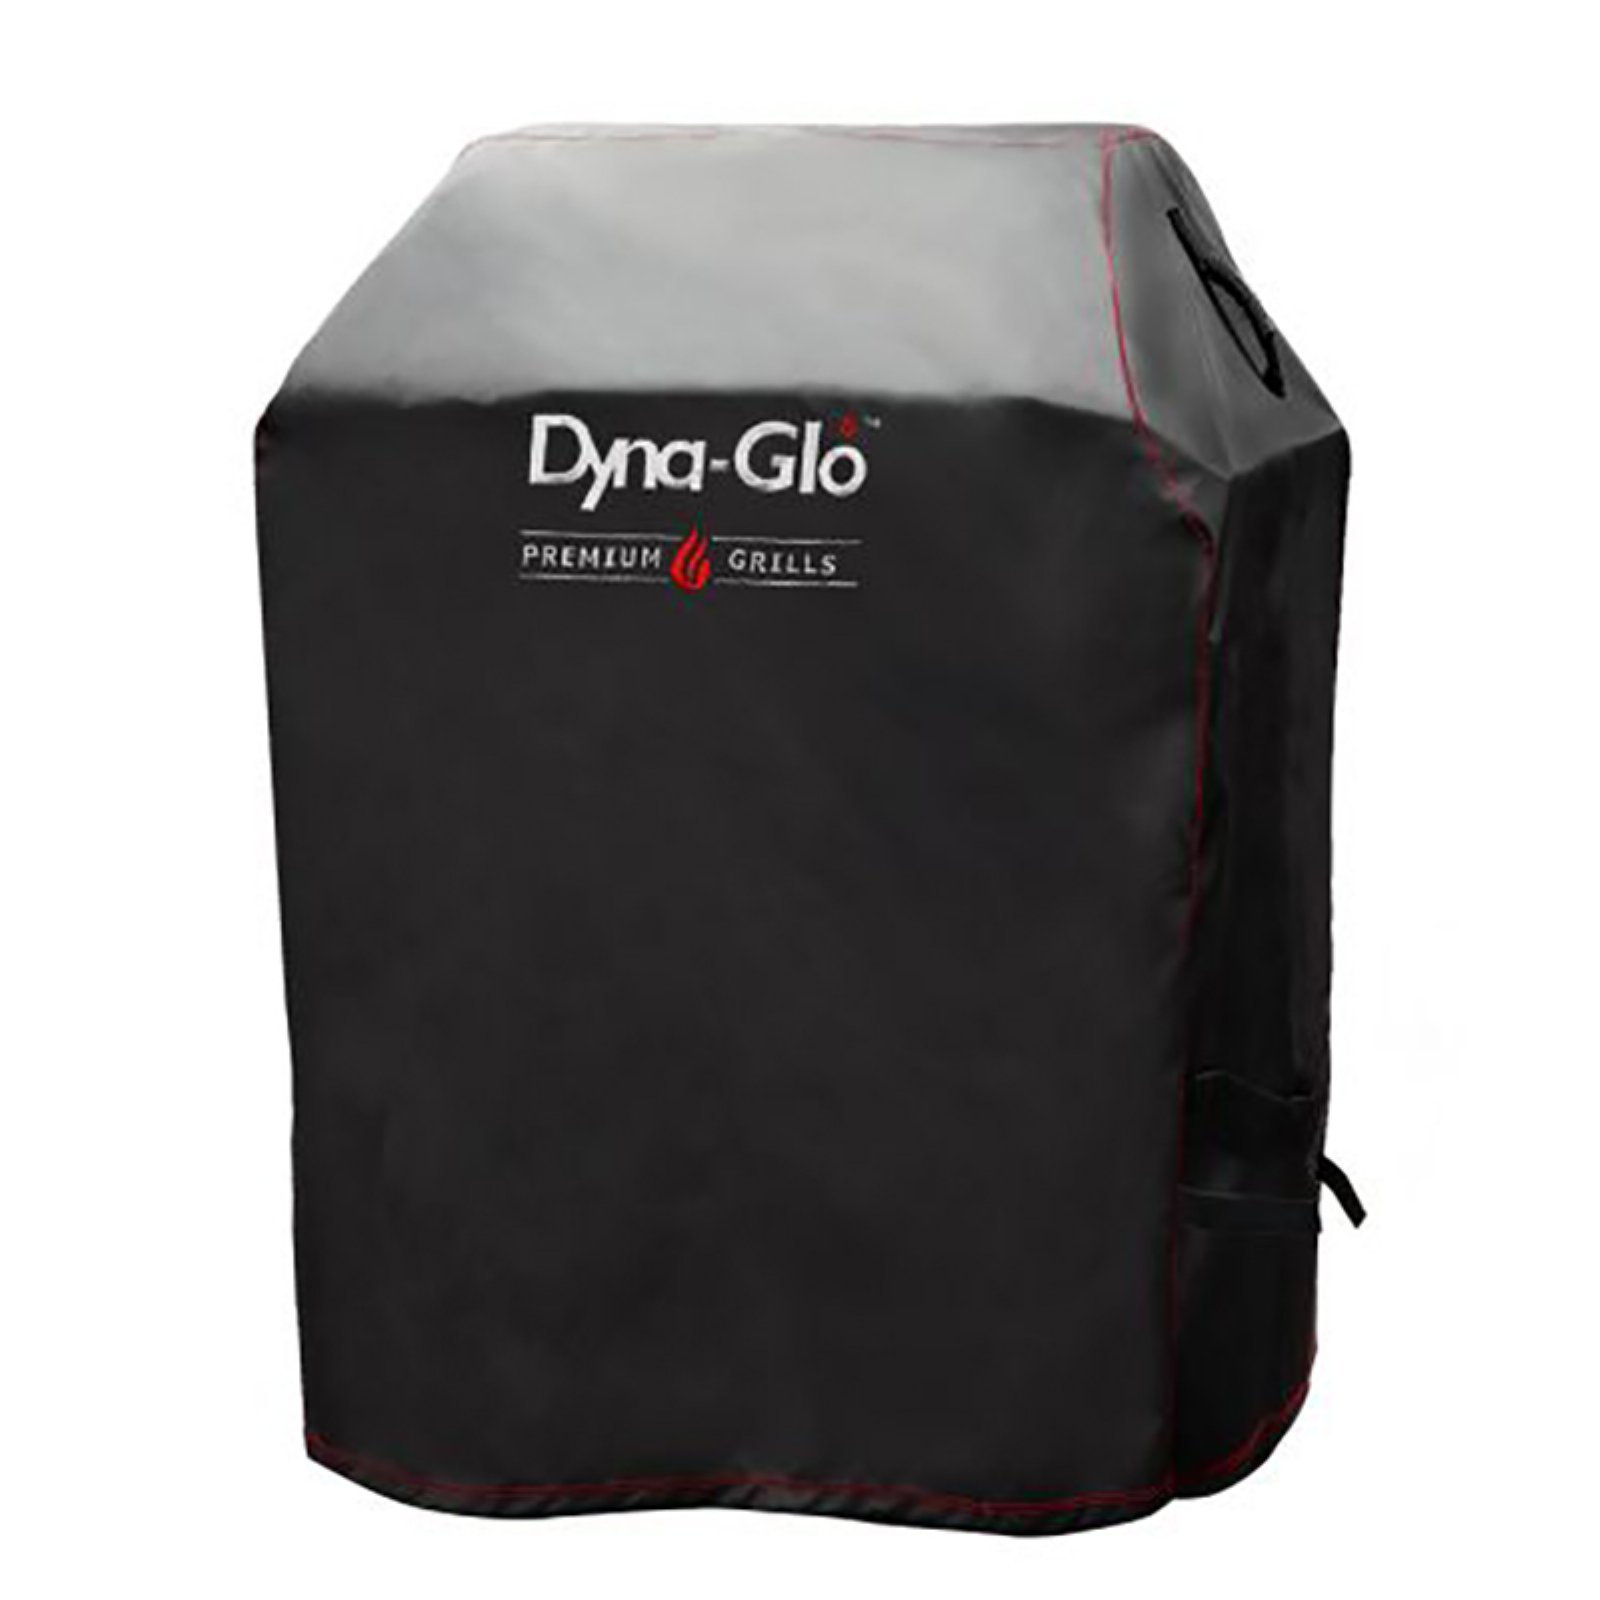 Dyna-Glo DG300C Premium Grill Cover for 2- or 3-Burner Grills by GHP Group, Inc.